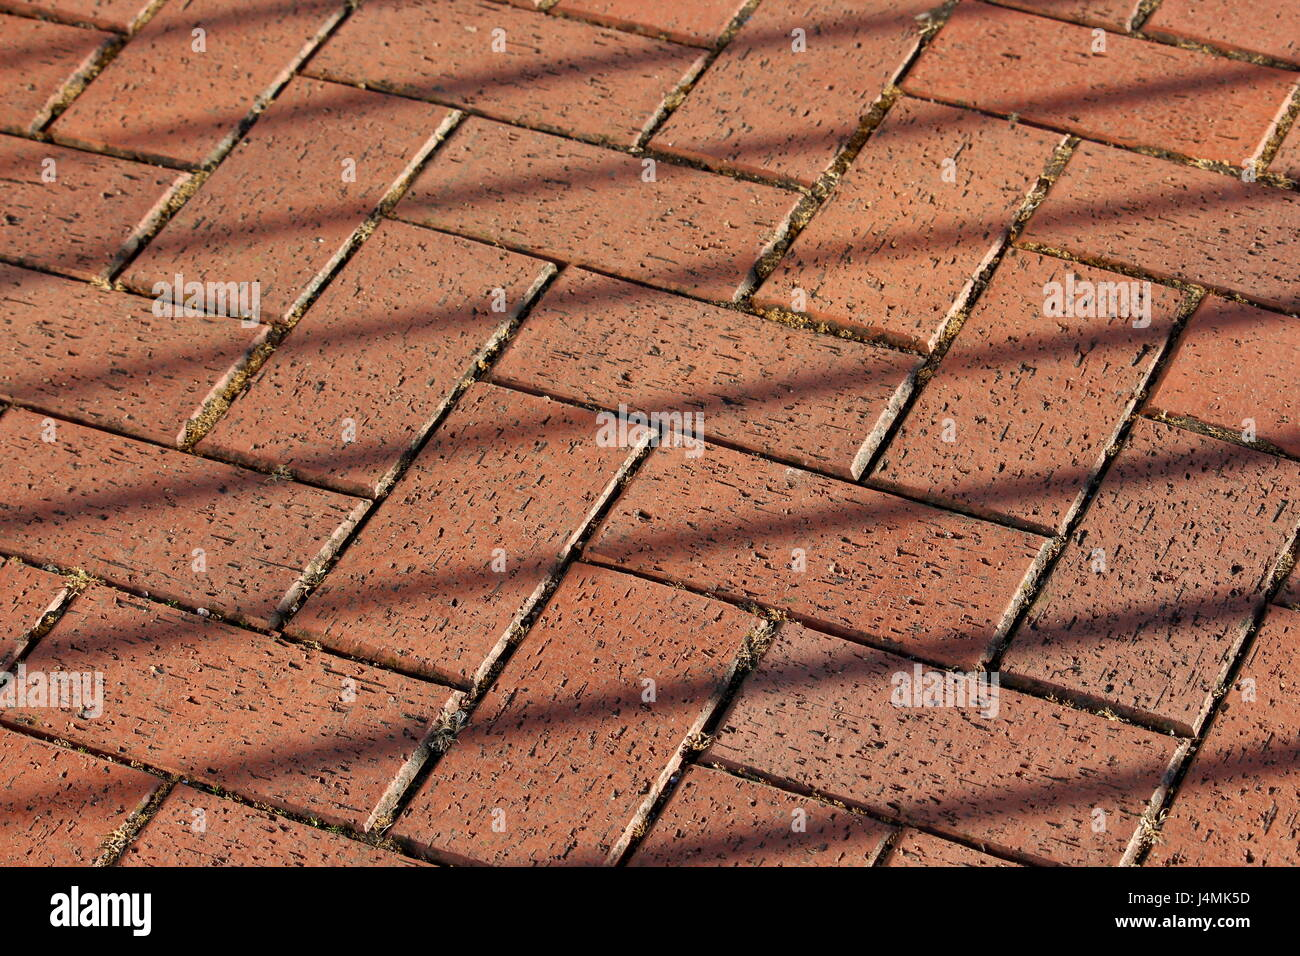 Red Brick Paving Floor Texture Herringbone Design Pattern With Diagonal Lines Of Fence Shadow